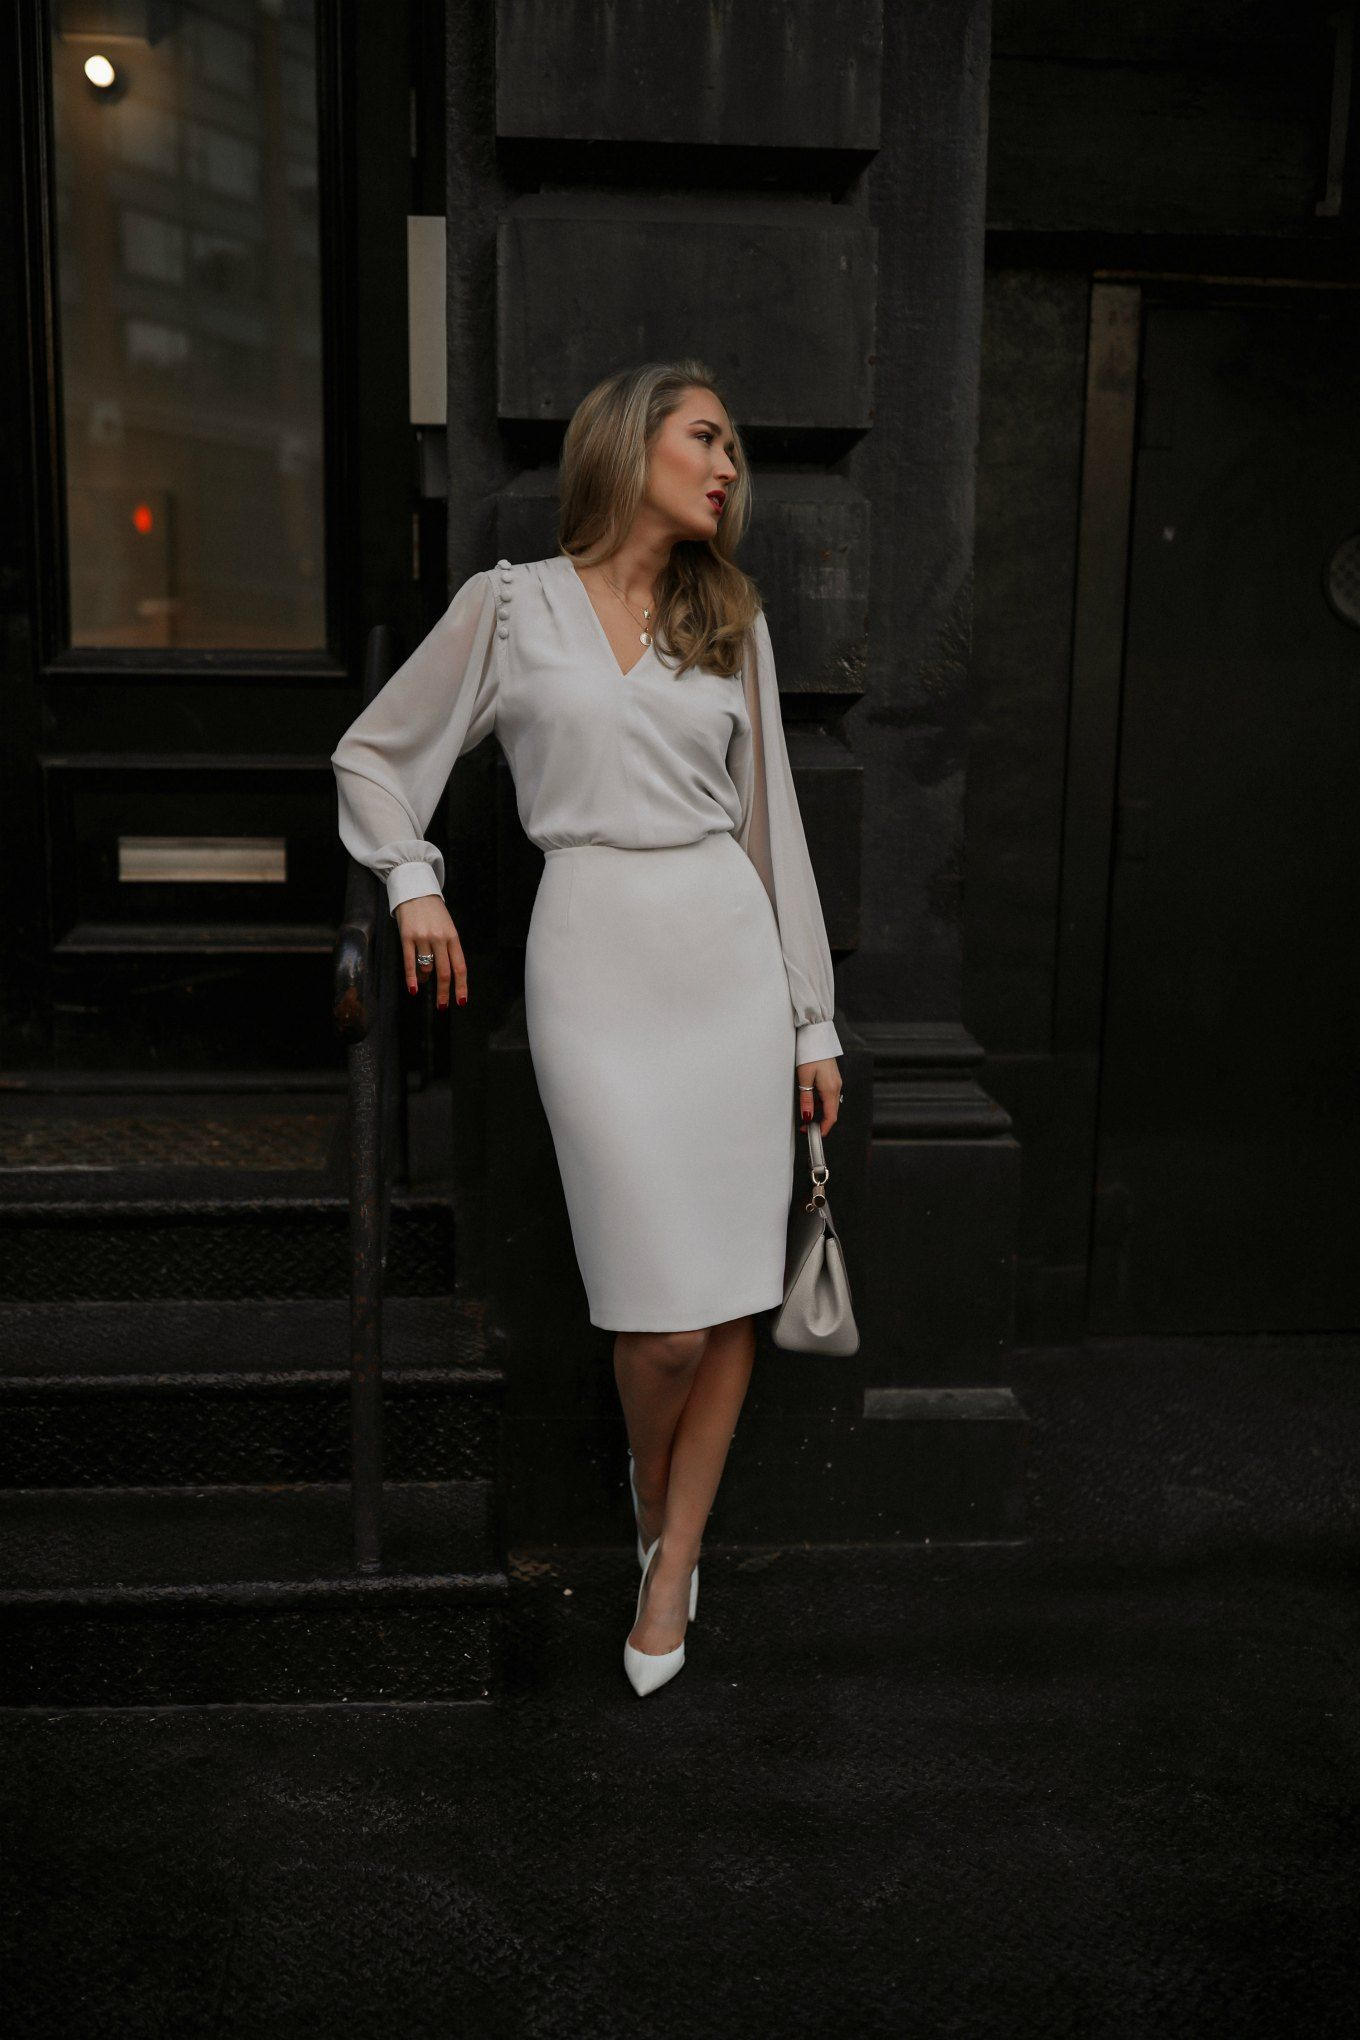 5fa2aec4db NYC style blogger in Reiss dress on city sidewalk wearing pumps and Dolce    Gabbana bag